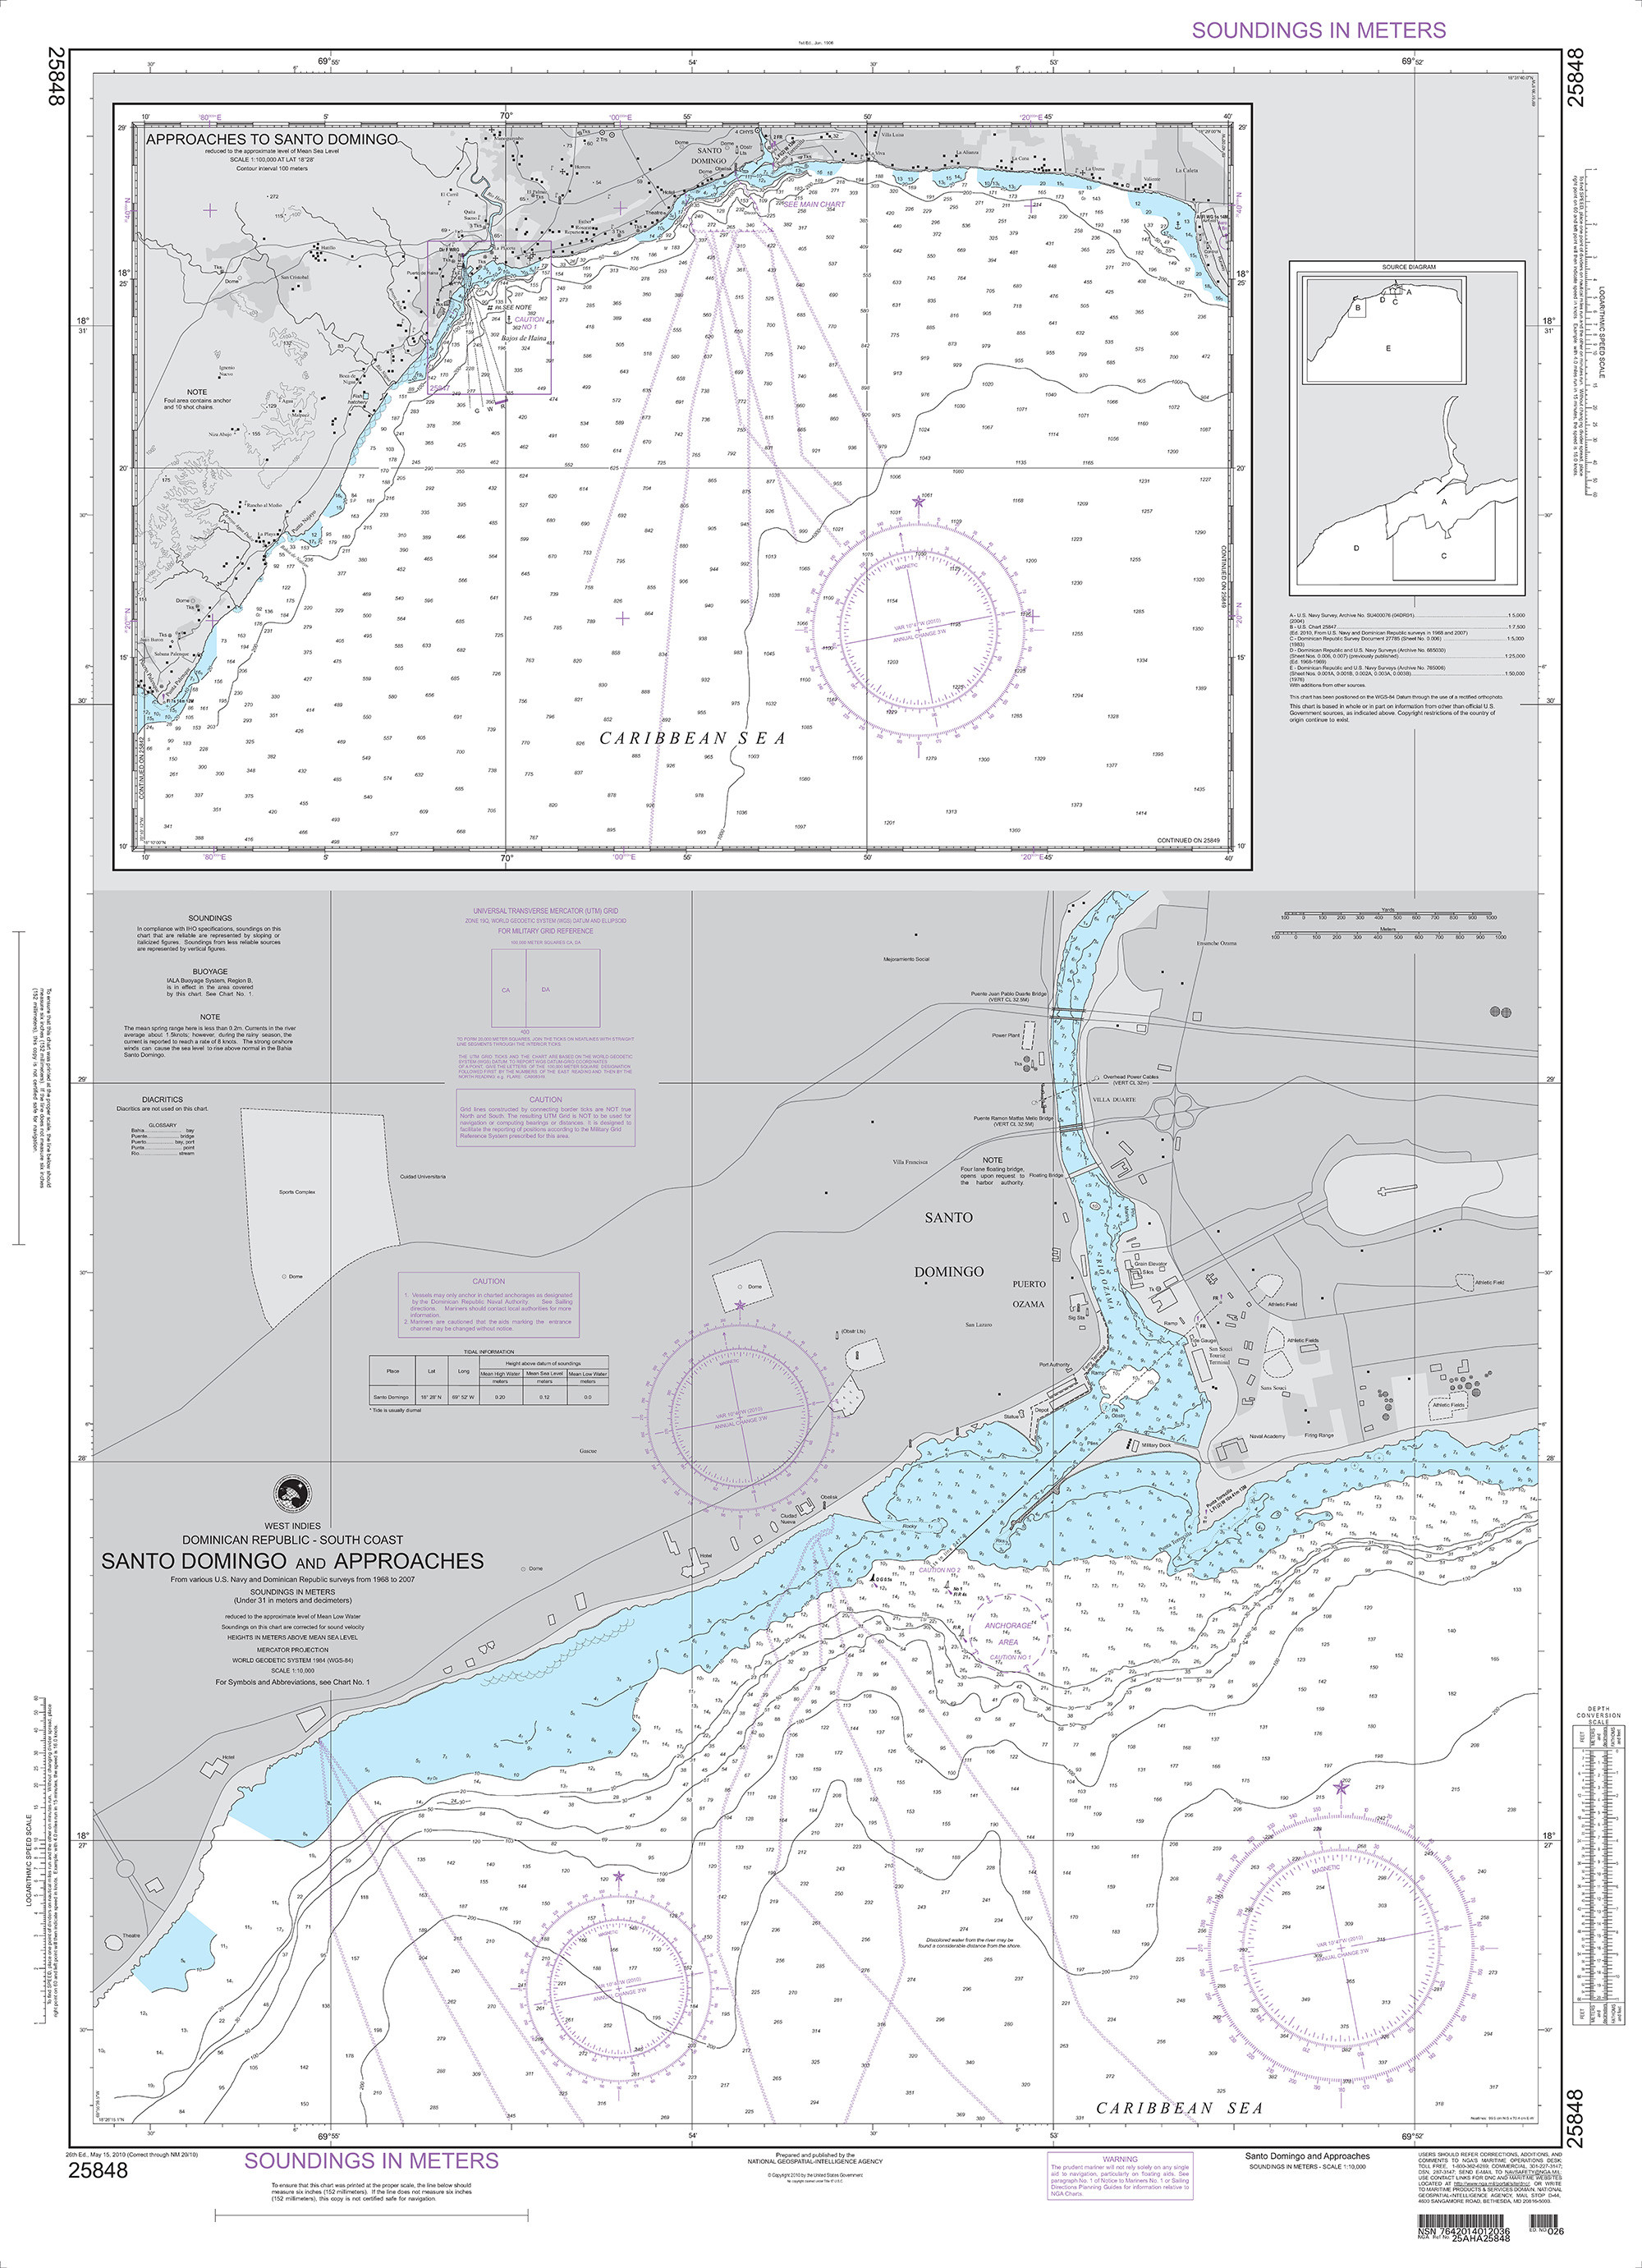 NGA Nautical Chart - 25848 Dominican Republic-South Coast Plans: A  Puerto  de Haina